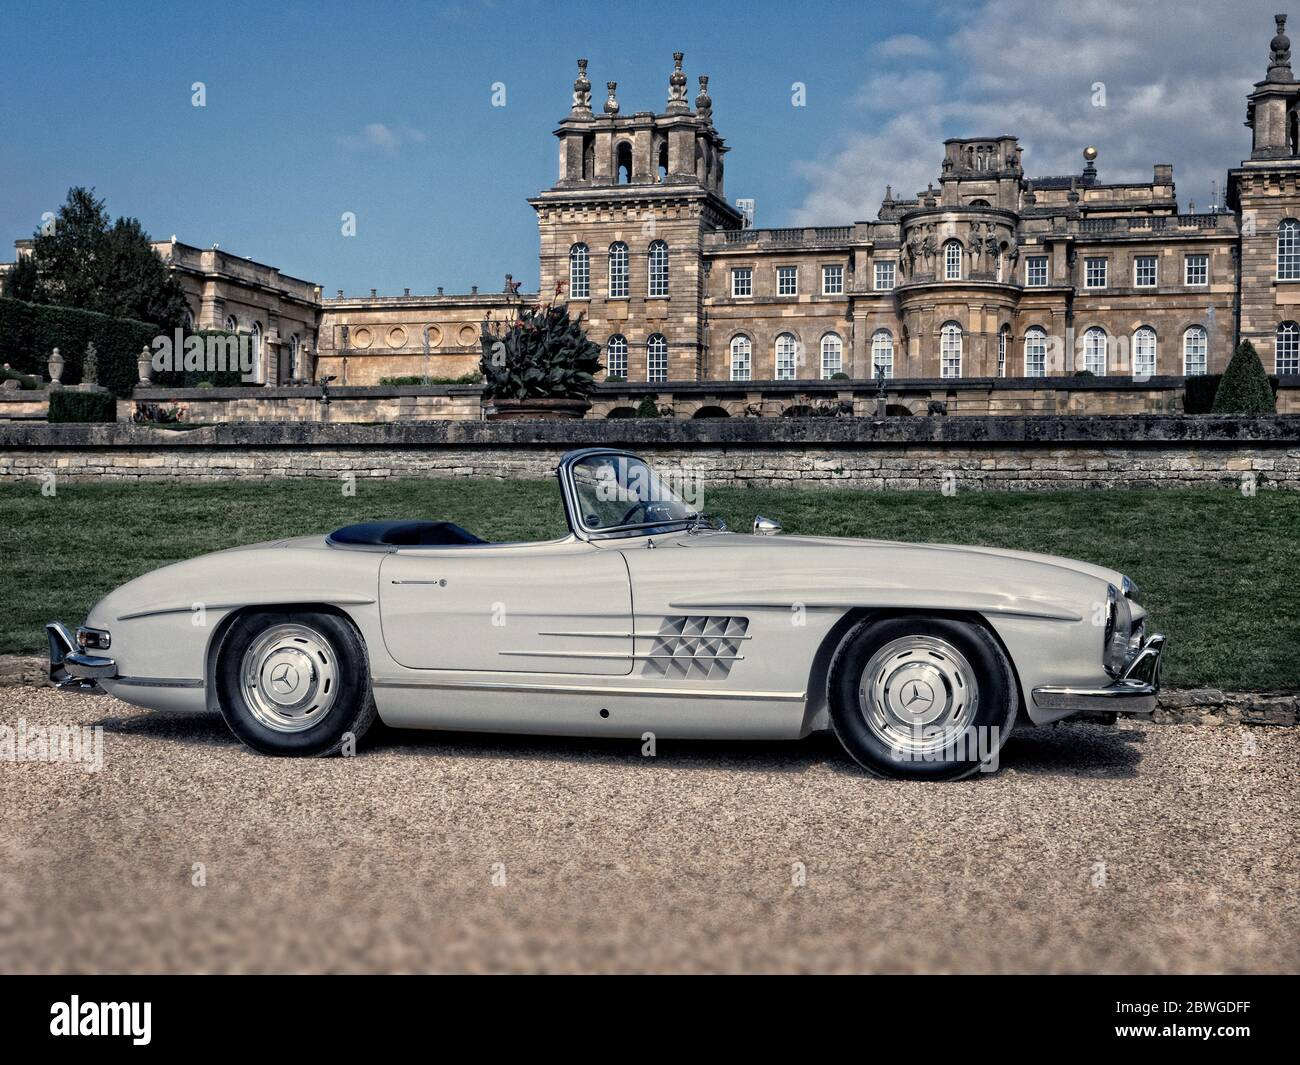 1958 Mercedes Benz 300sl Roadster At Salon Prive Blenheim Palace 2019 Stock Photo Alamy